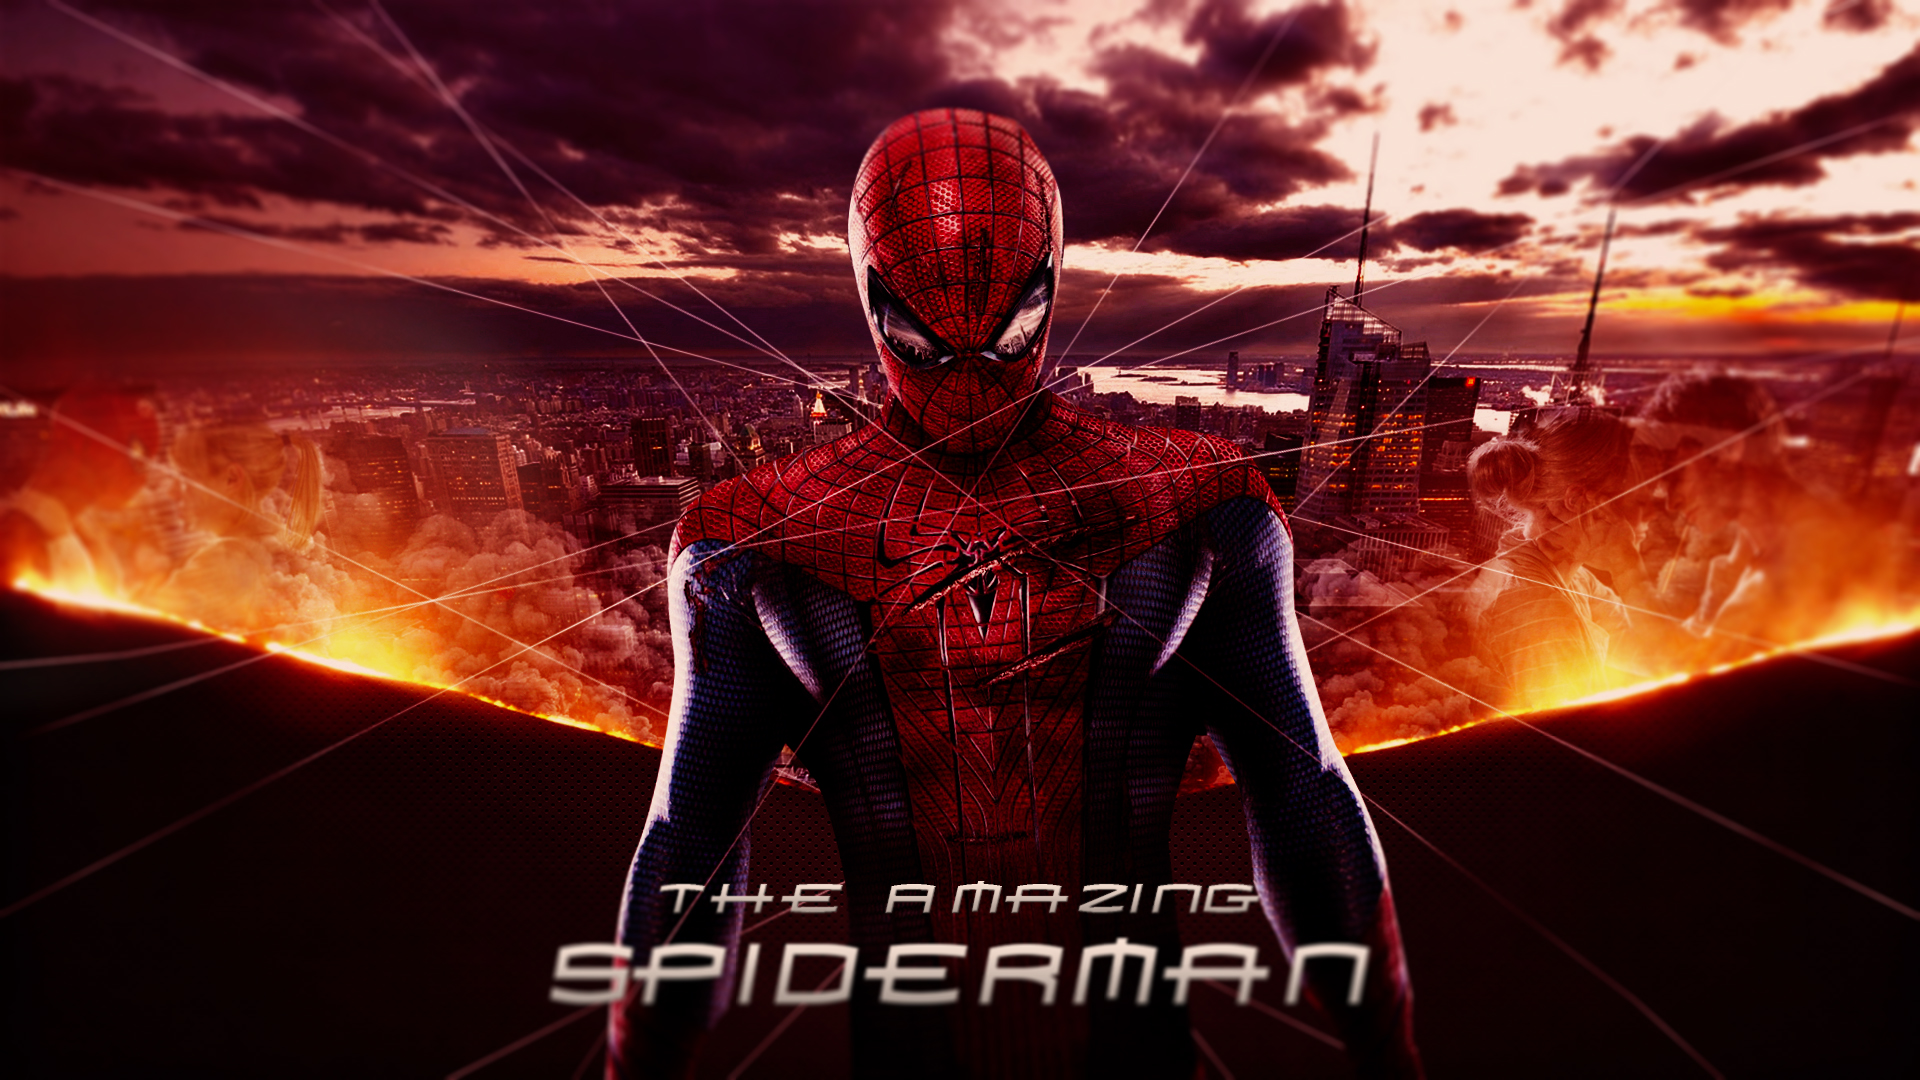 31 spiderman hd wallpaper - photo #35